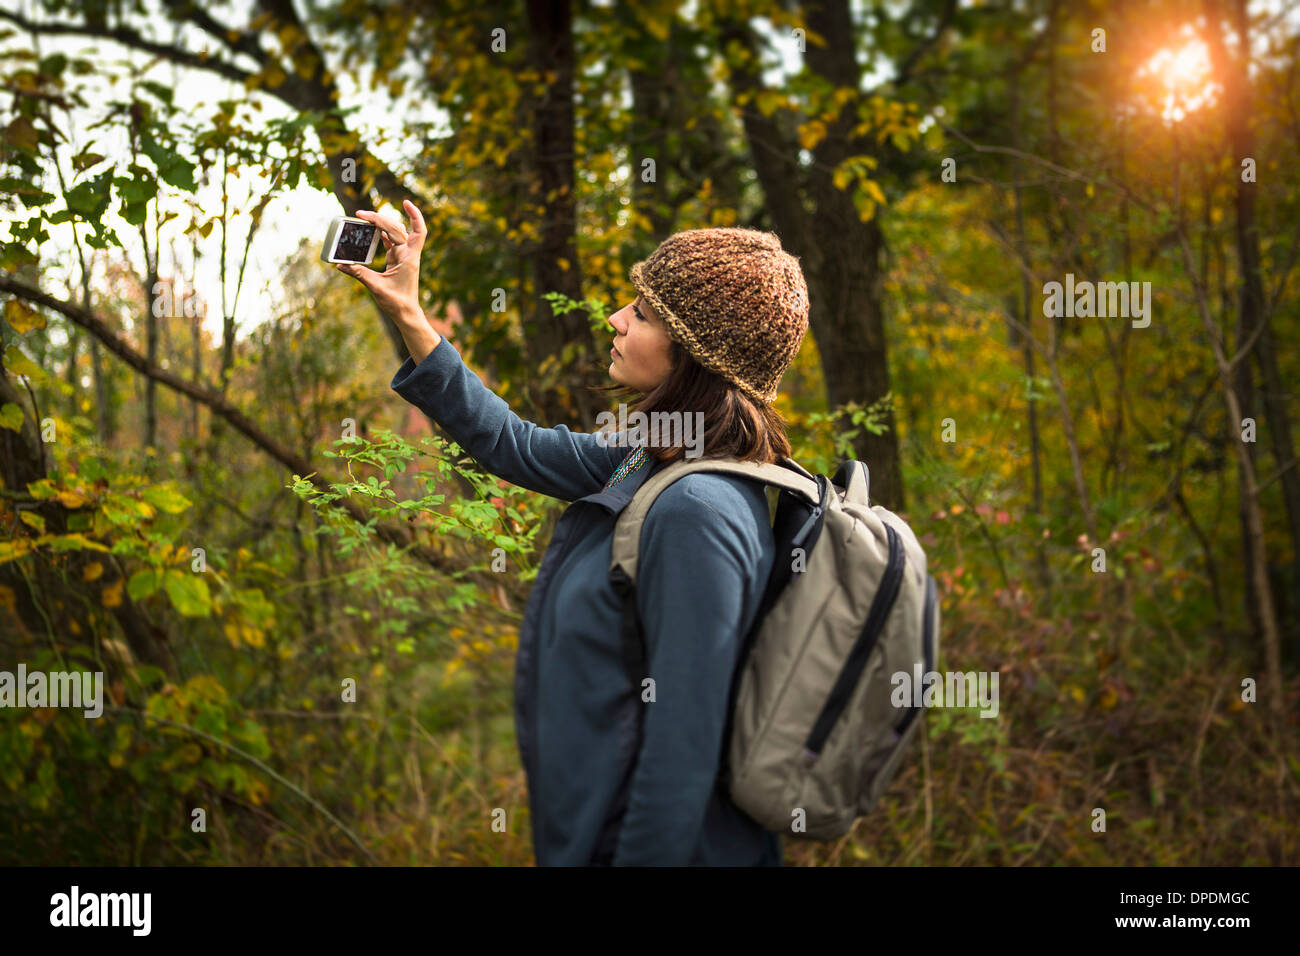 Mature woman taking photograph in forest using smartphone - Stock Image